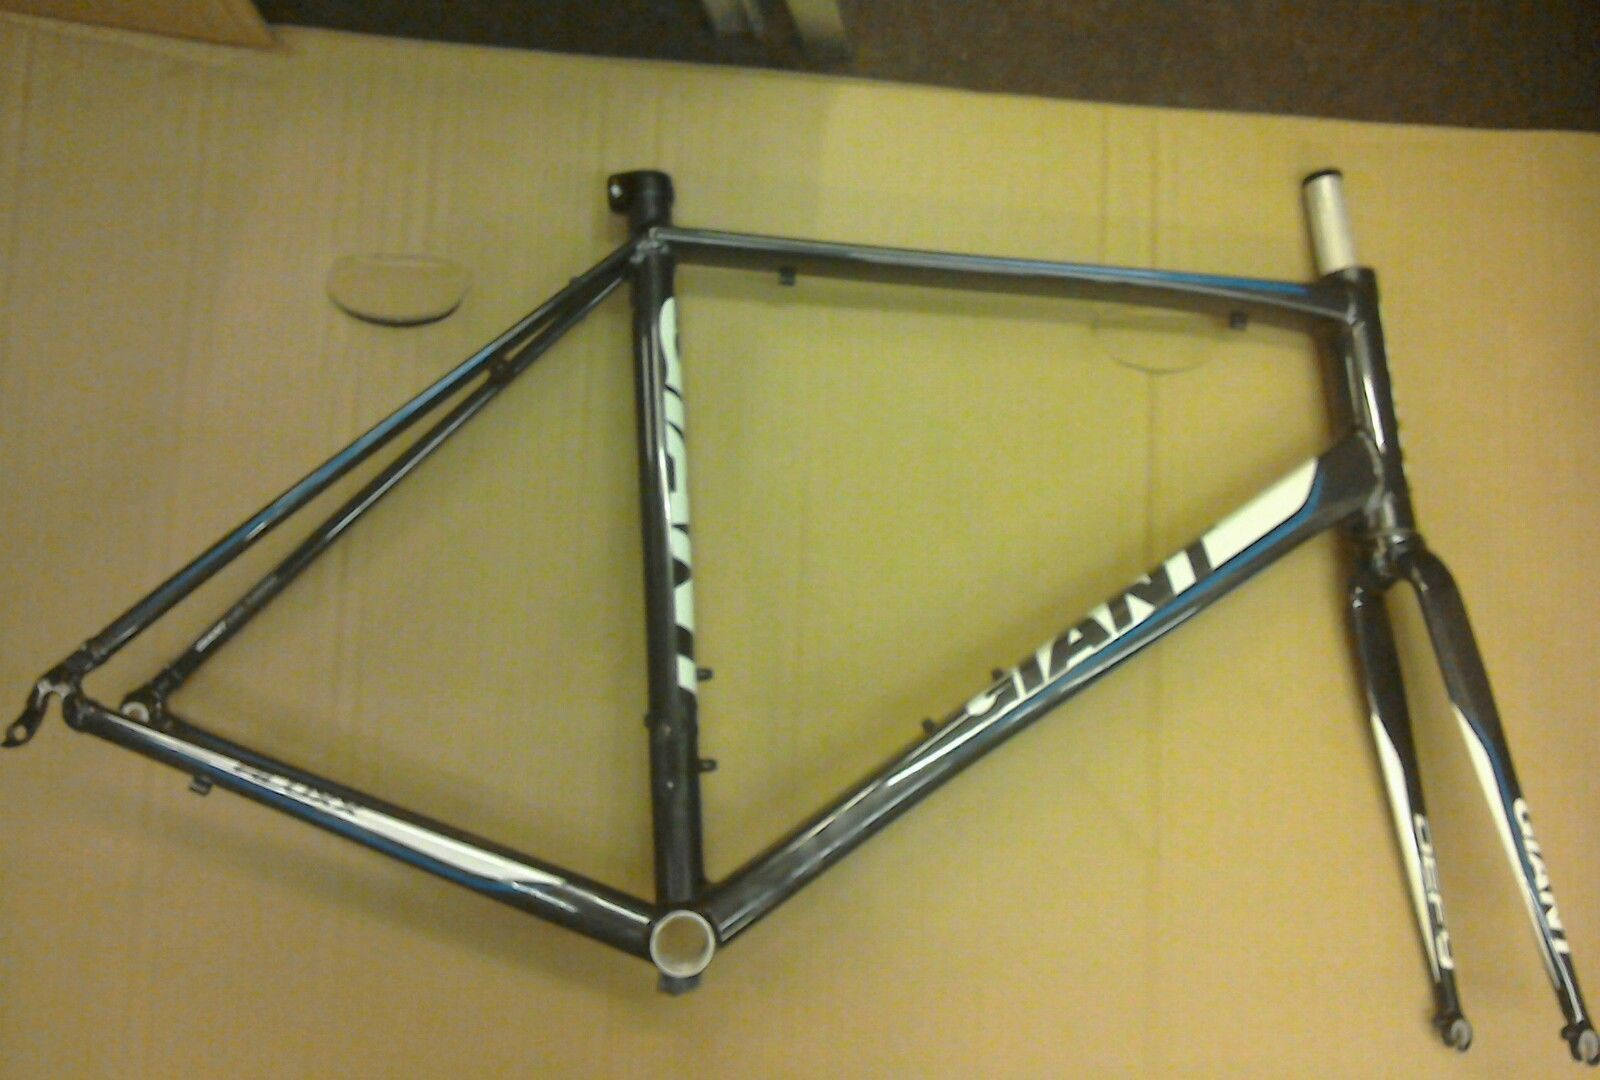 NUOVO Giant Defy 5 telaio e forcelle. NN. L 55.5cm